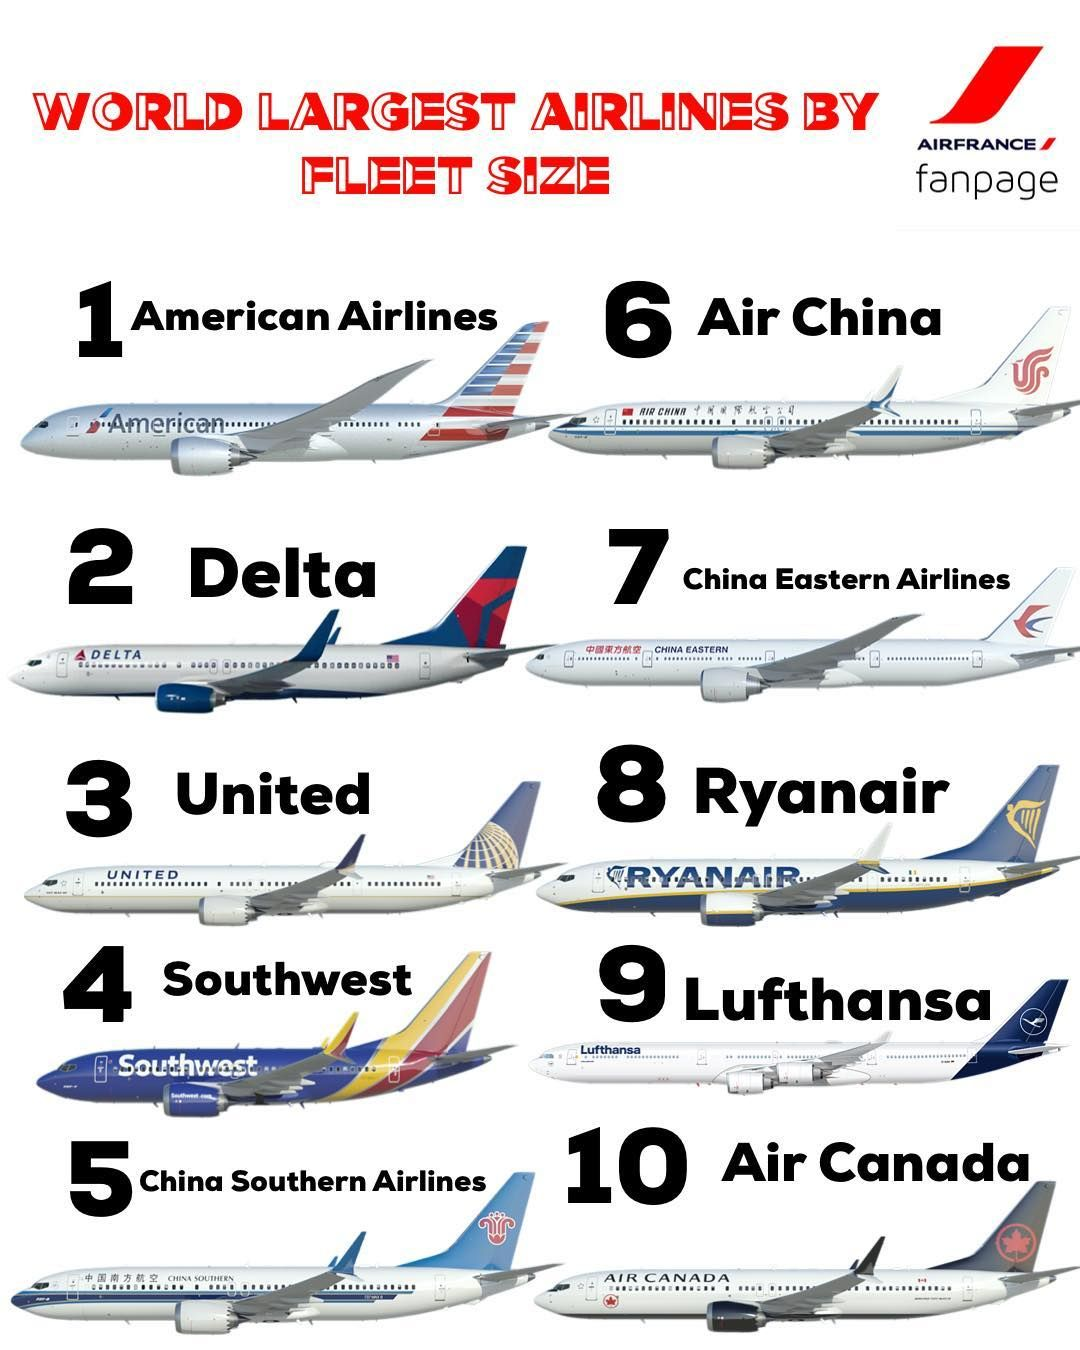 The top 10 largest airlines by fleet size 2018 😊 ️ (Phot